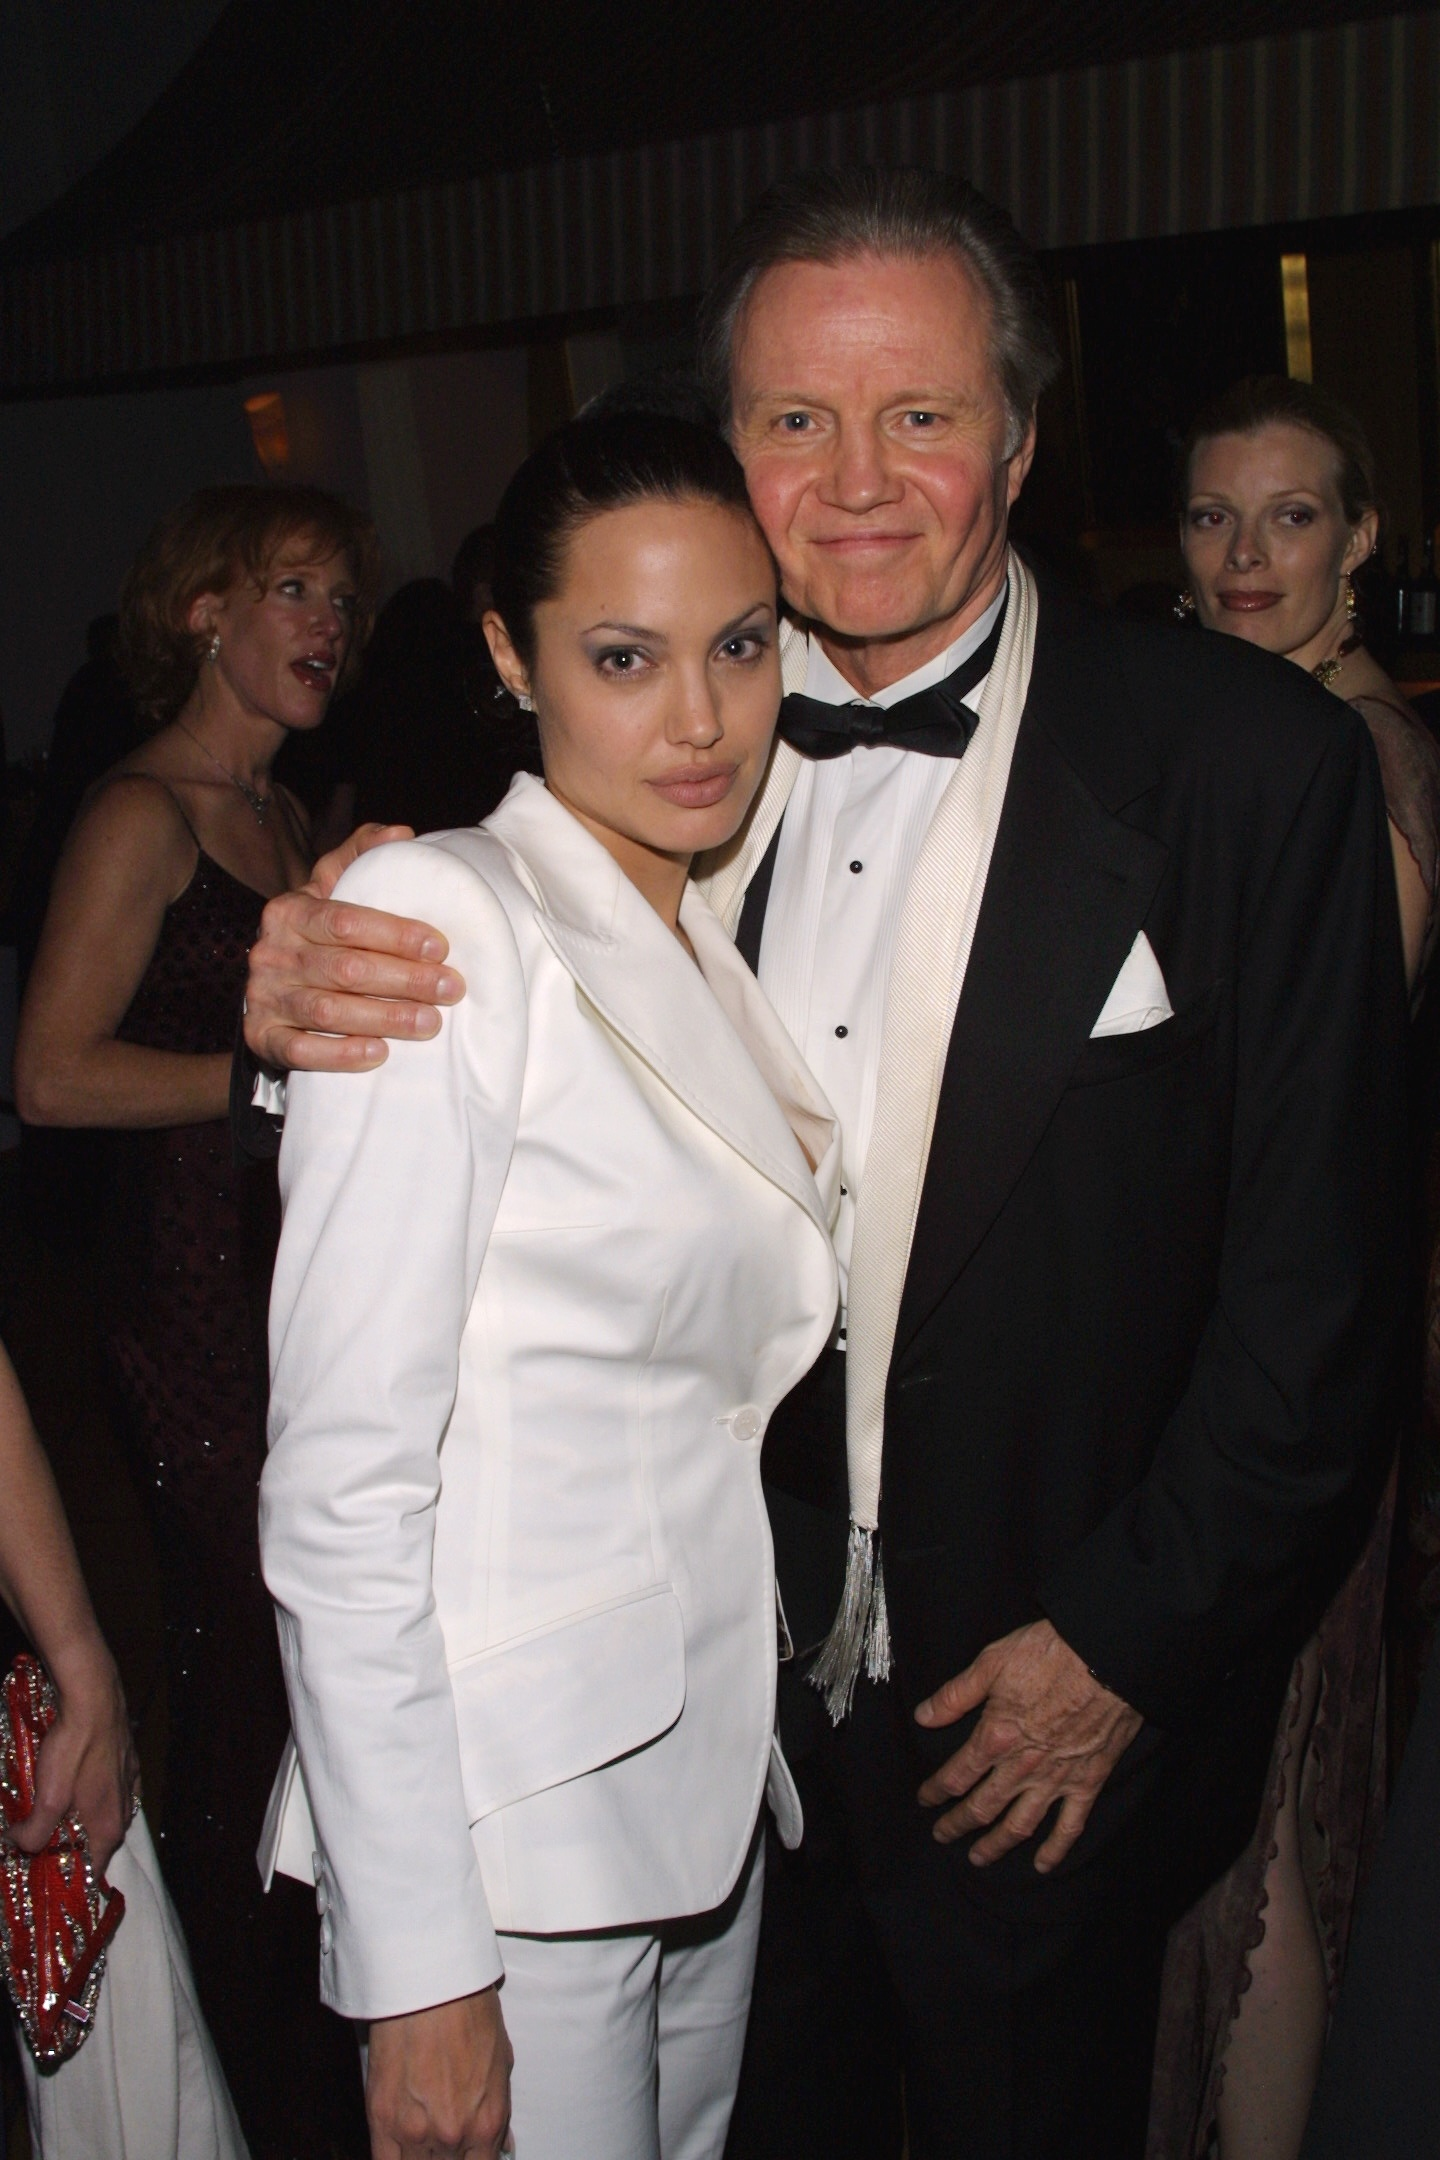 Jon Voight Gushes Over Daughter Angelina Jolie's Parenting Skills: 'She's a Really Good, Good Mommy'